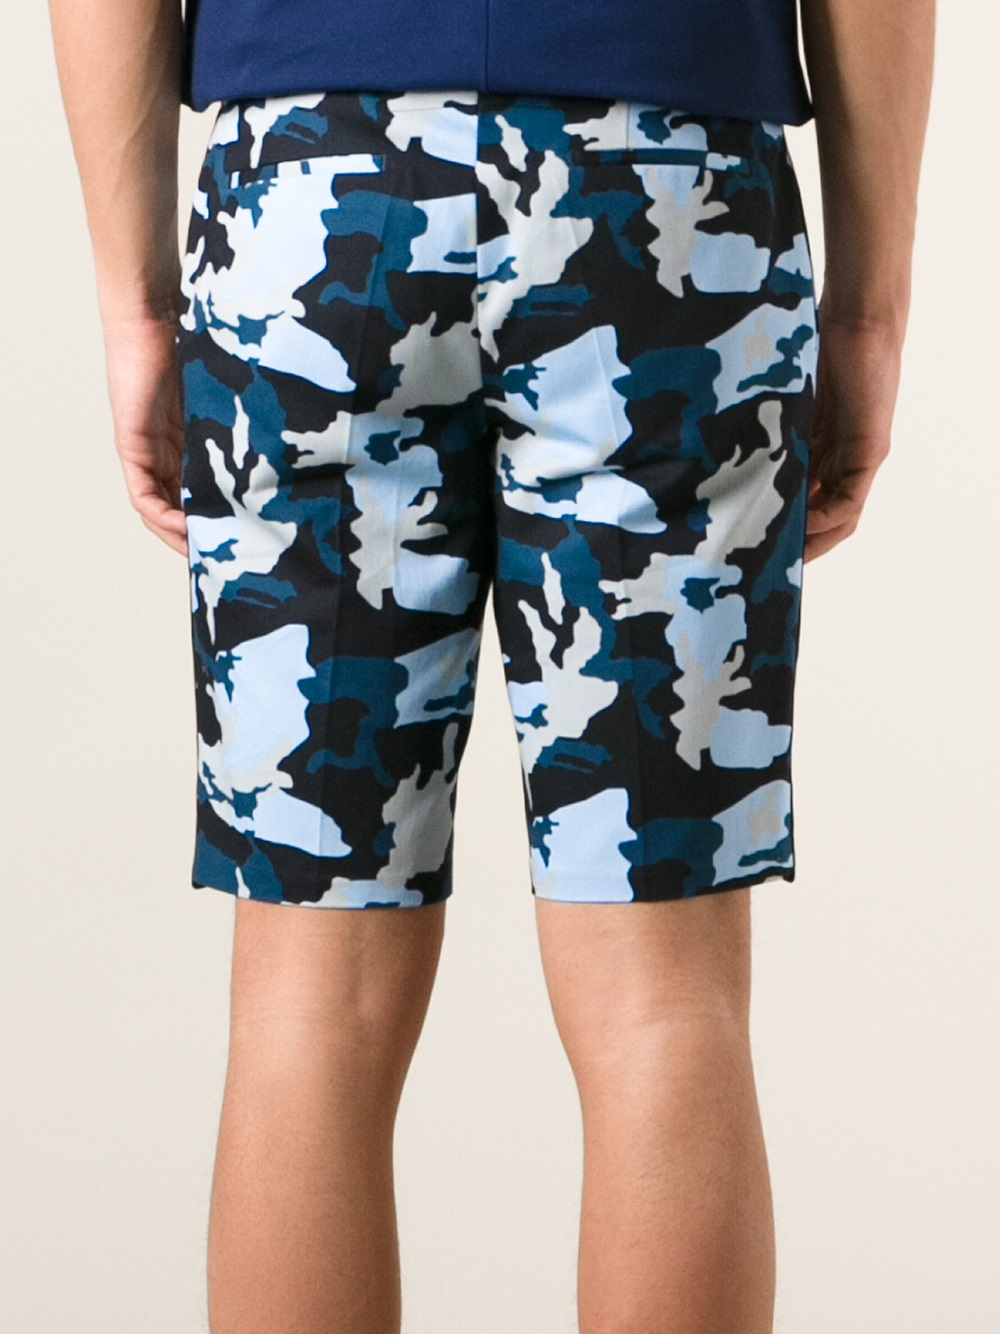 Lyst - Givenchy Camo Print Shorts in Blue for Men d381f7d2622